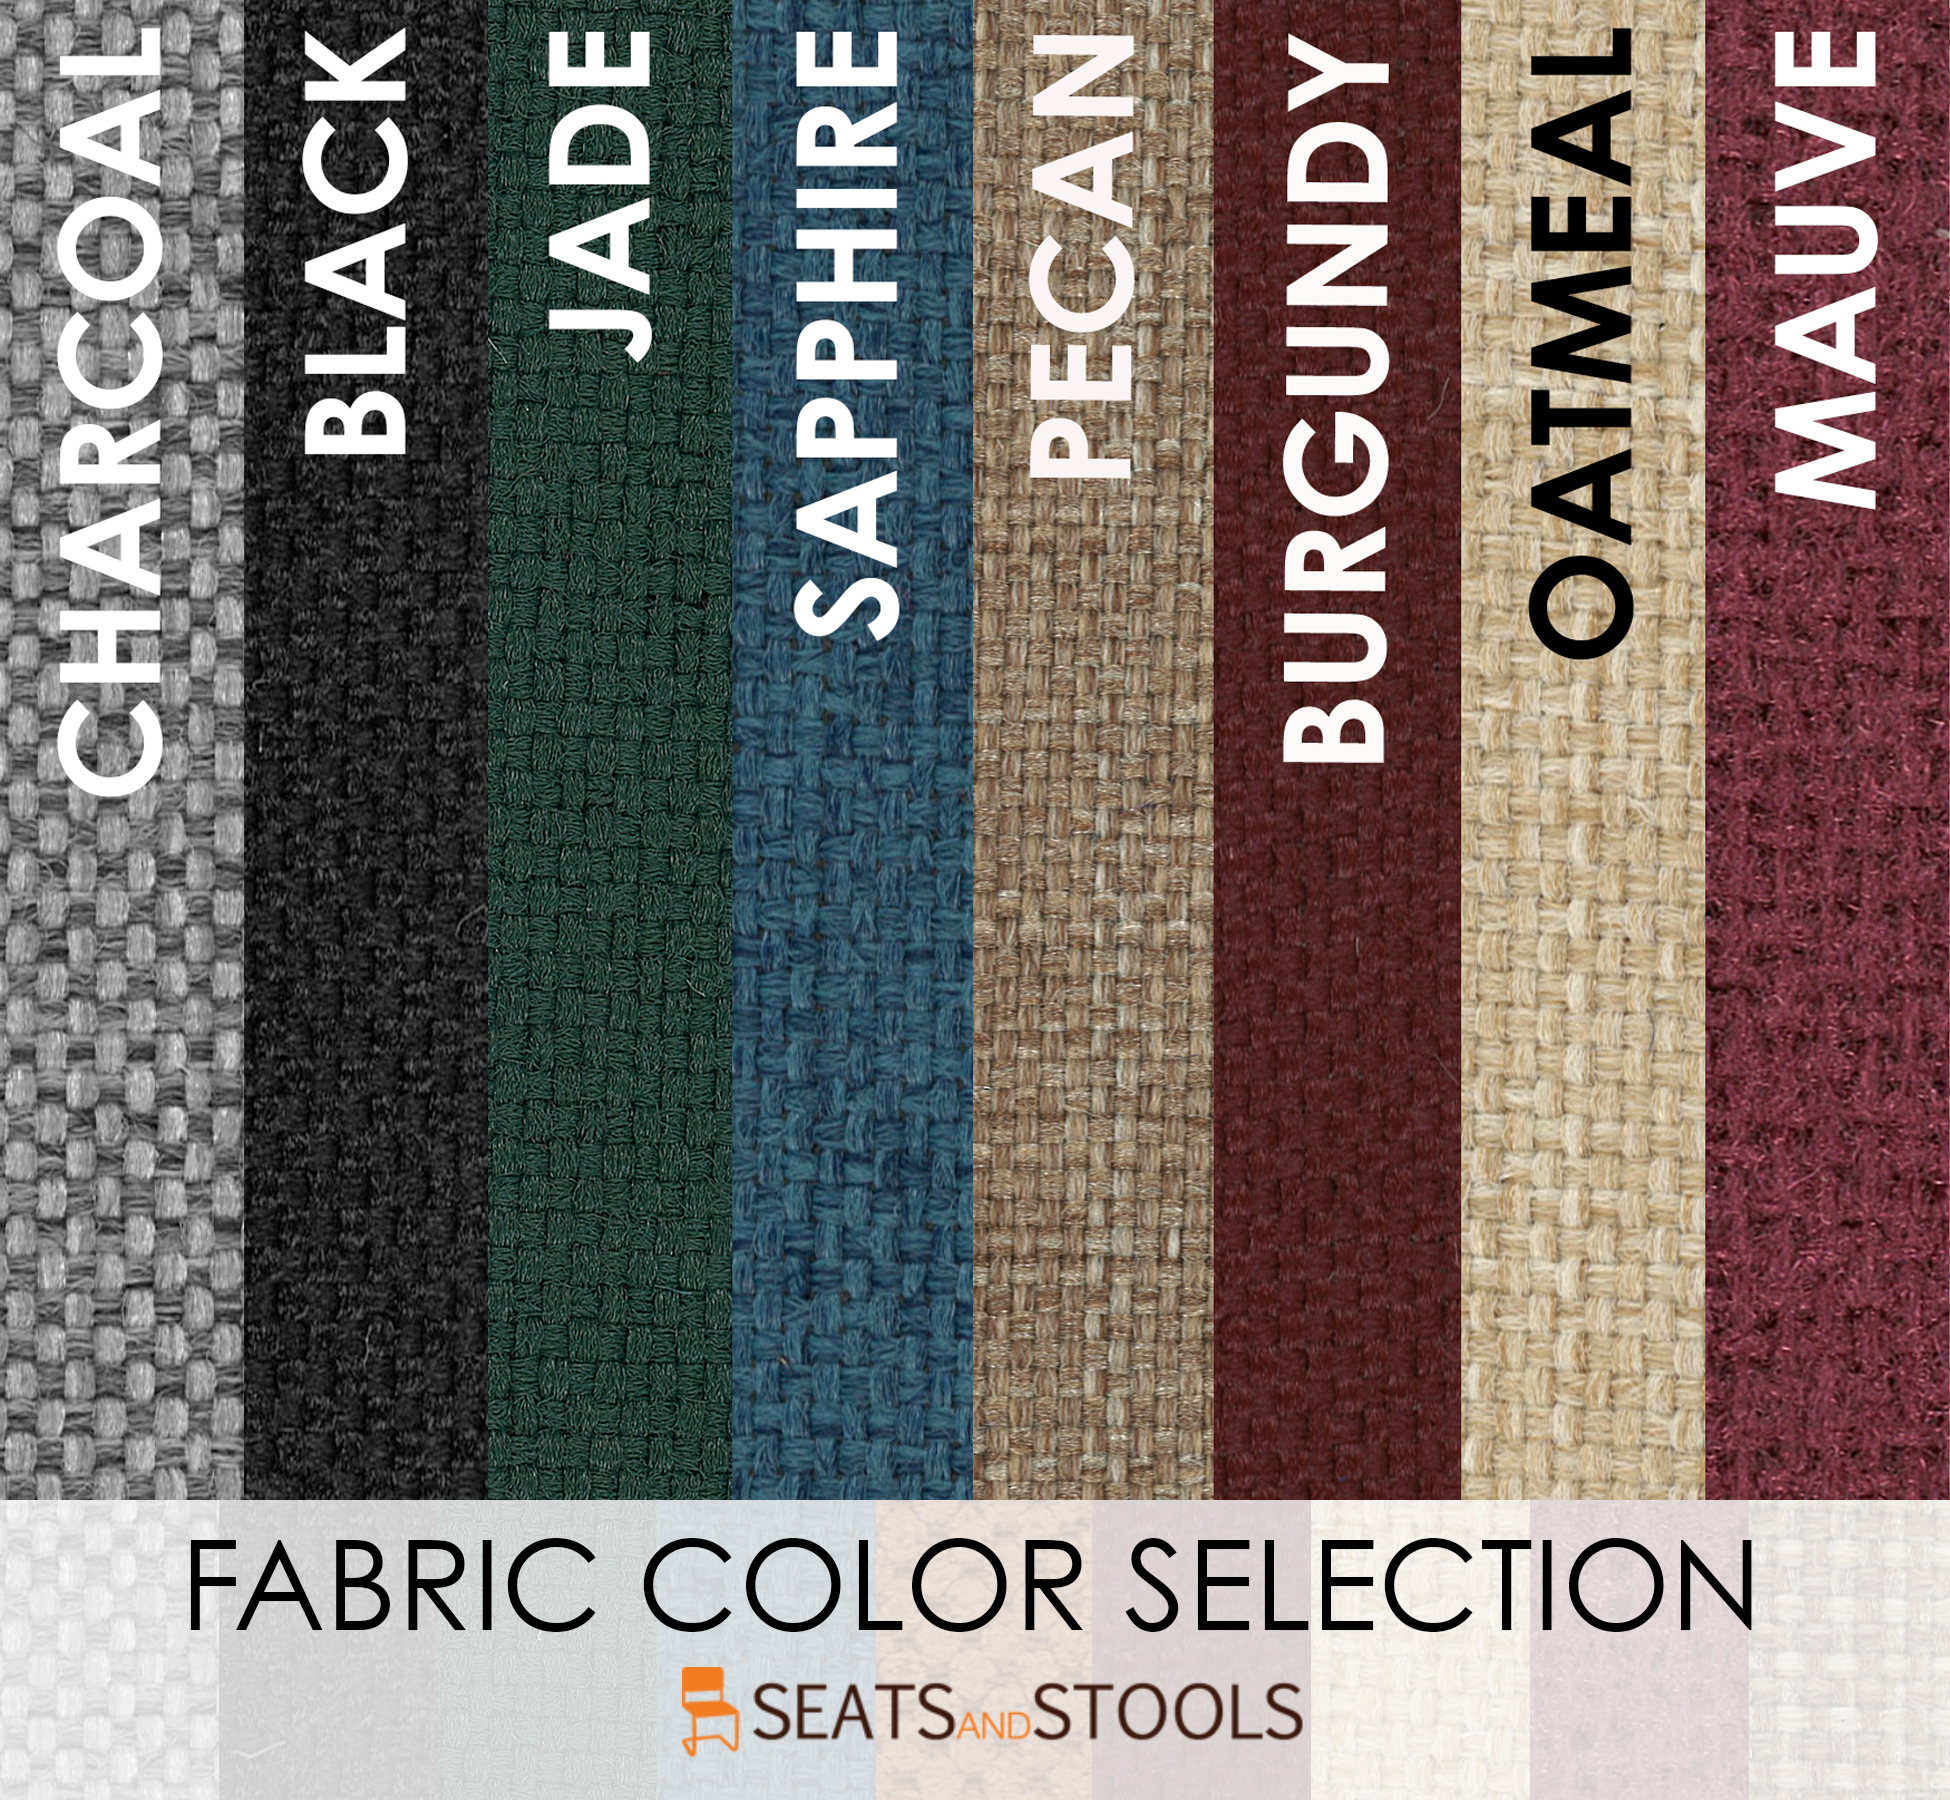 fabric-colors-053016.jpg